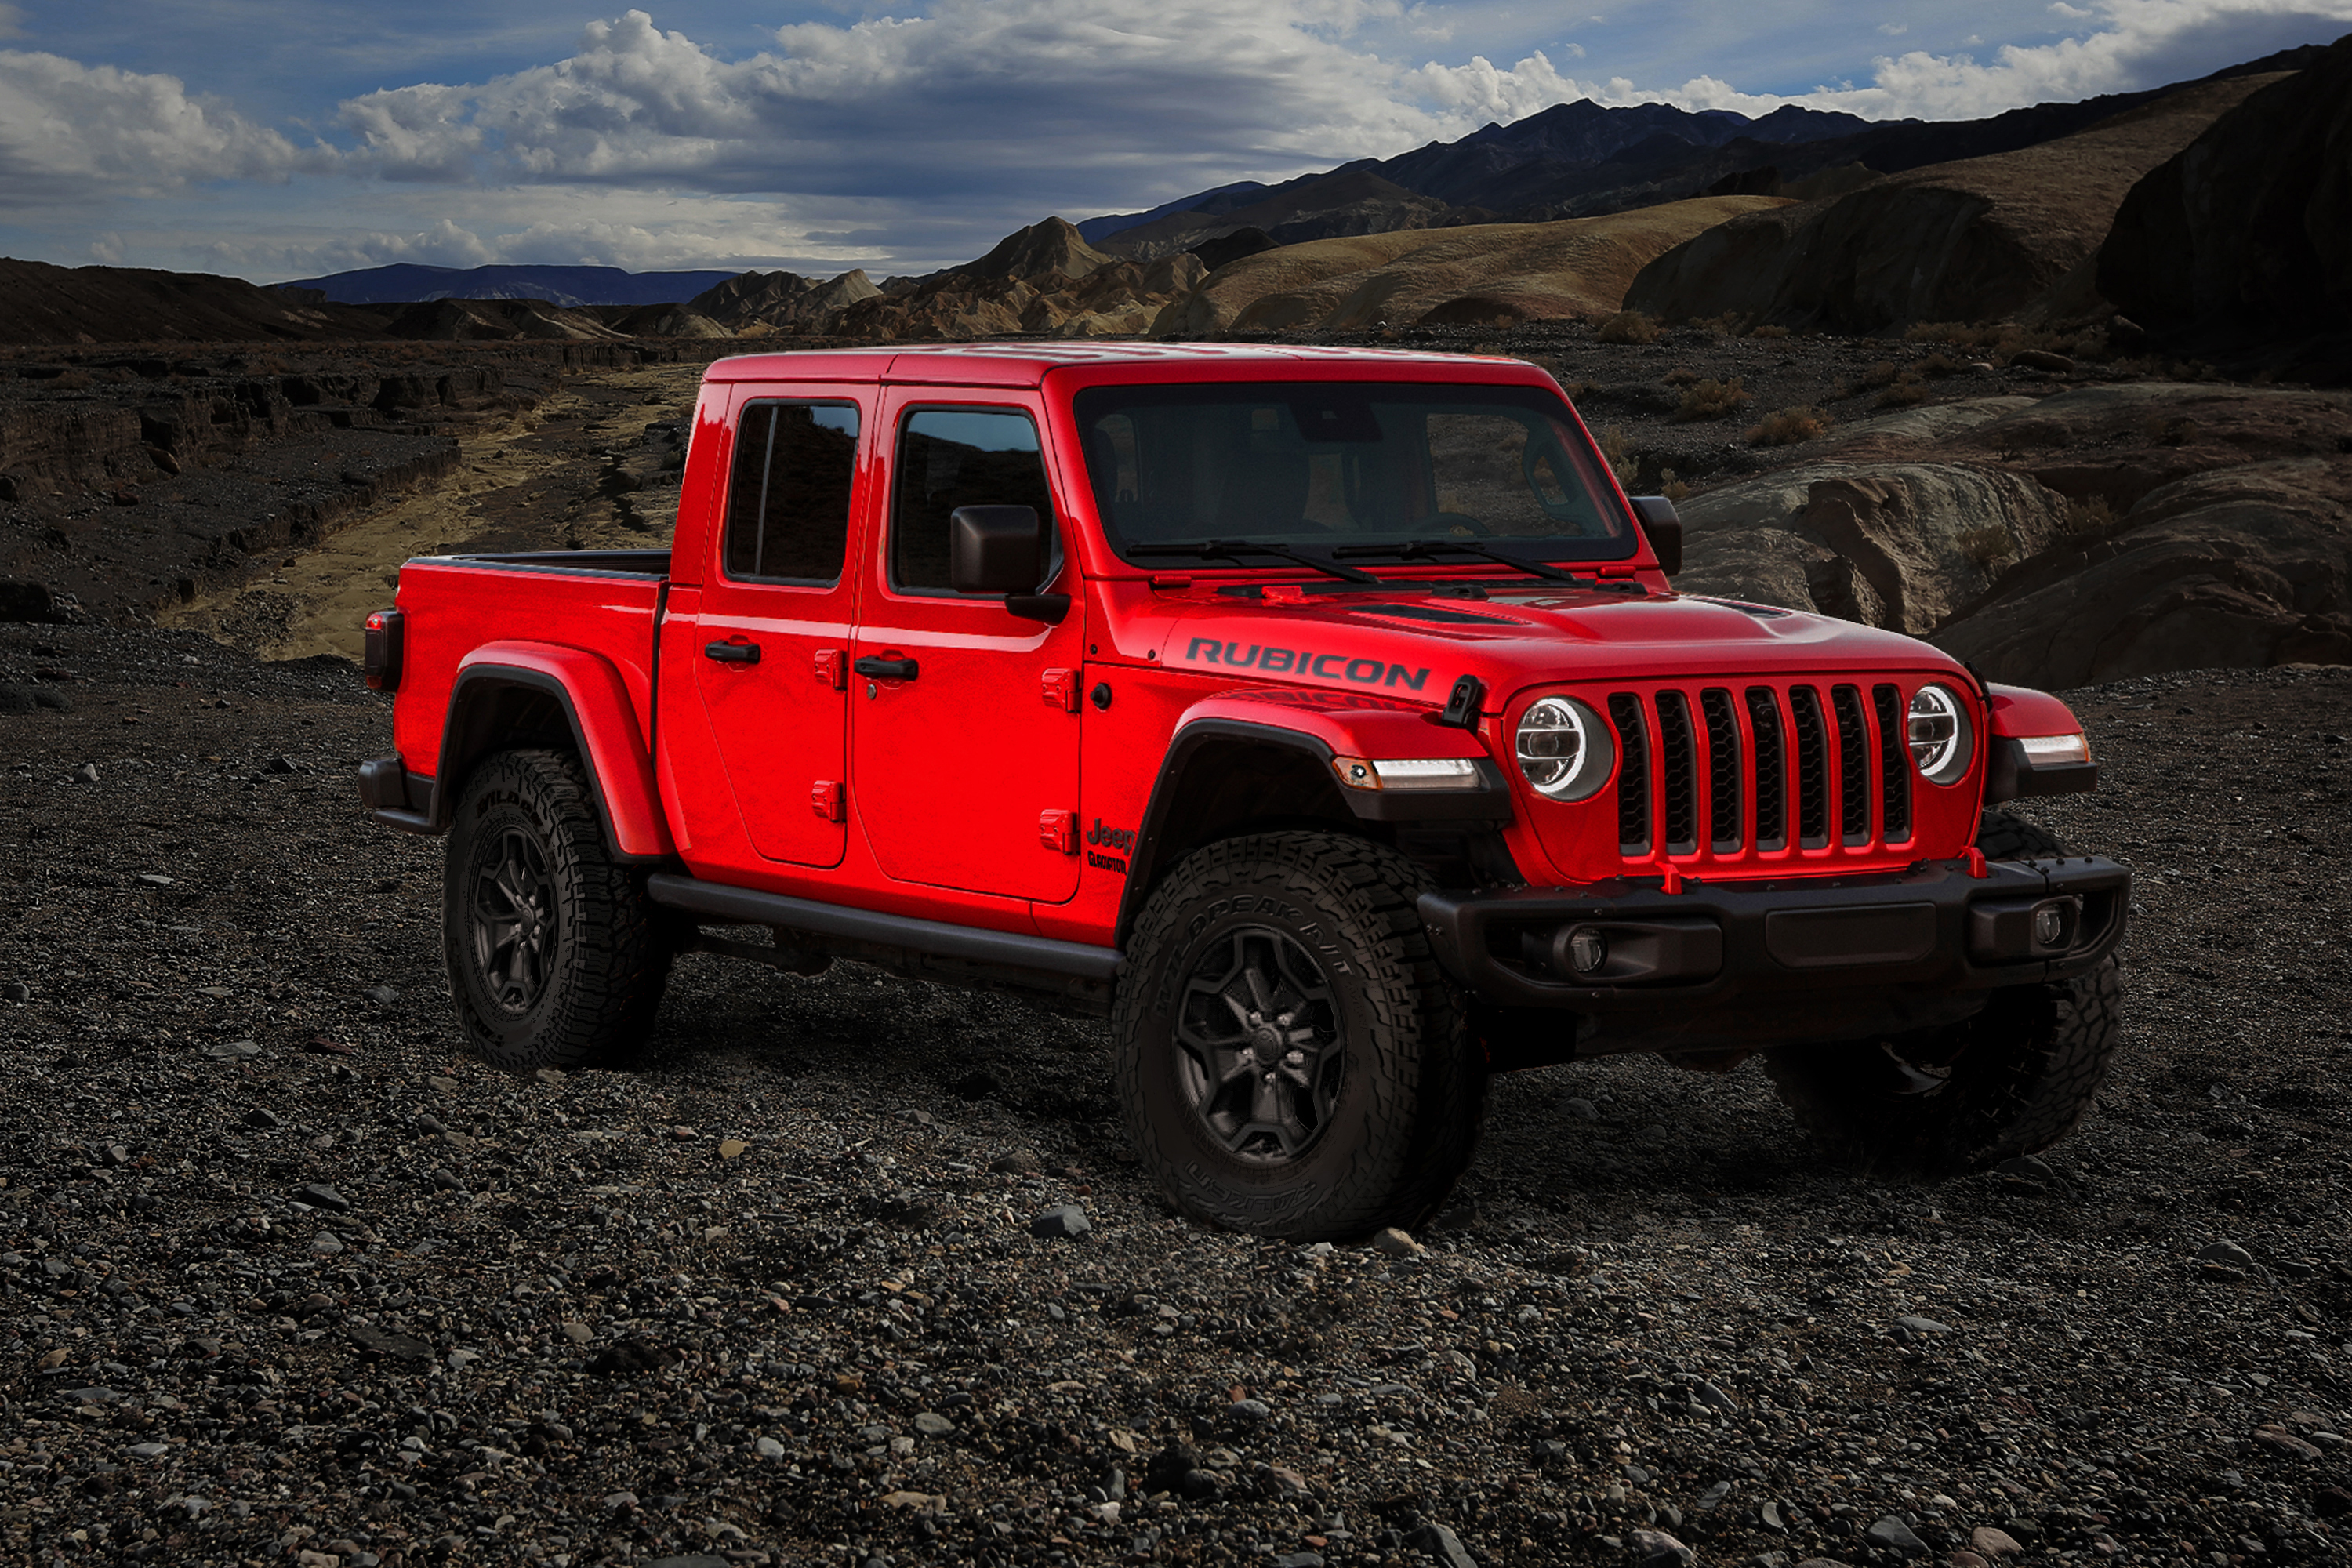 2020 Jeep Gladiator Rubicon Red